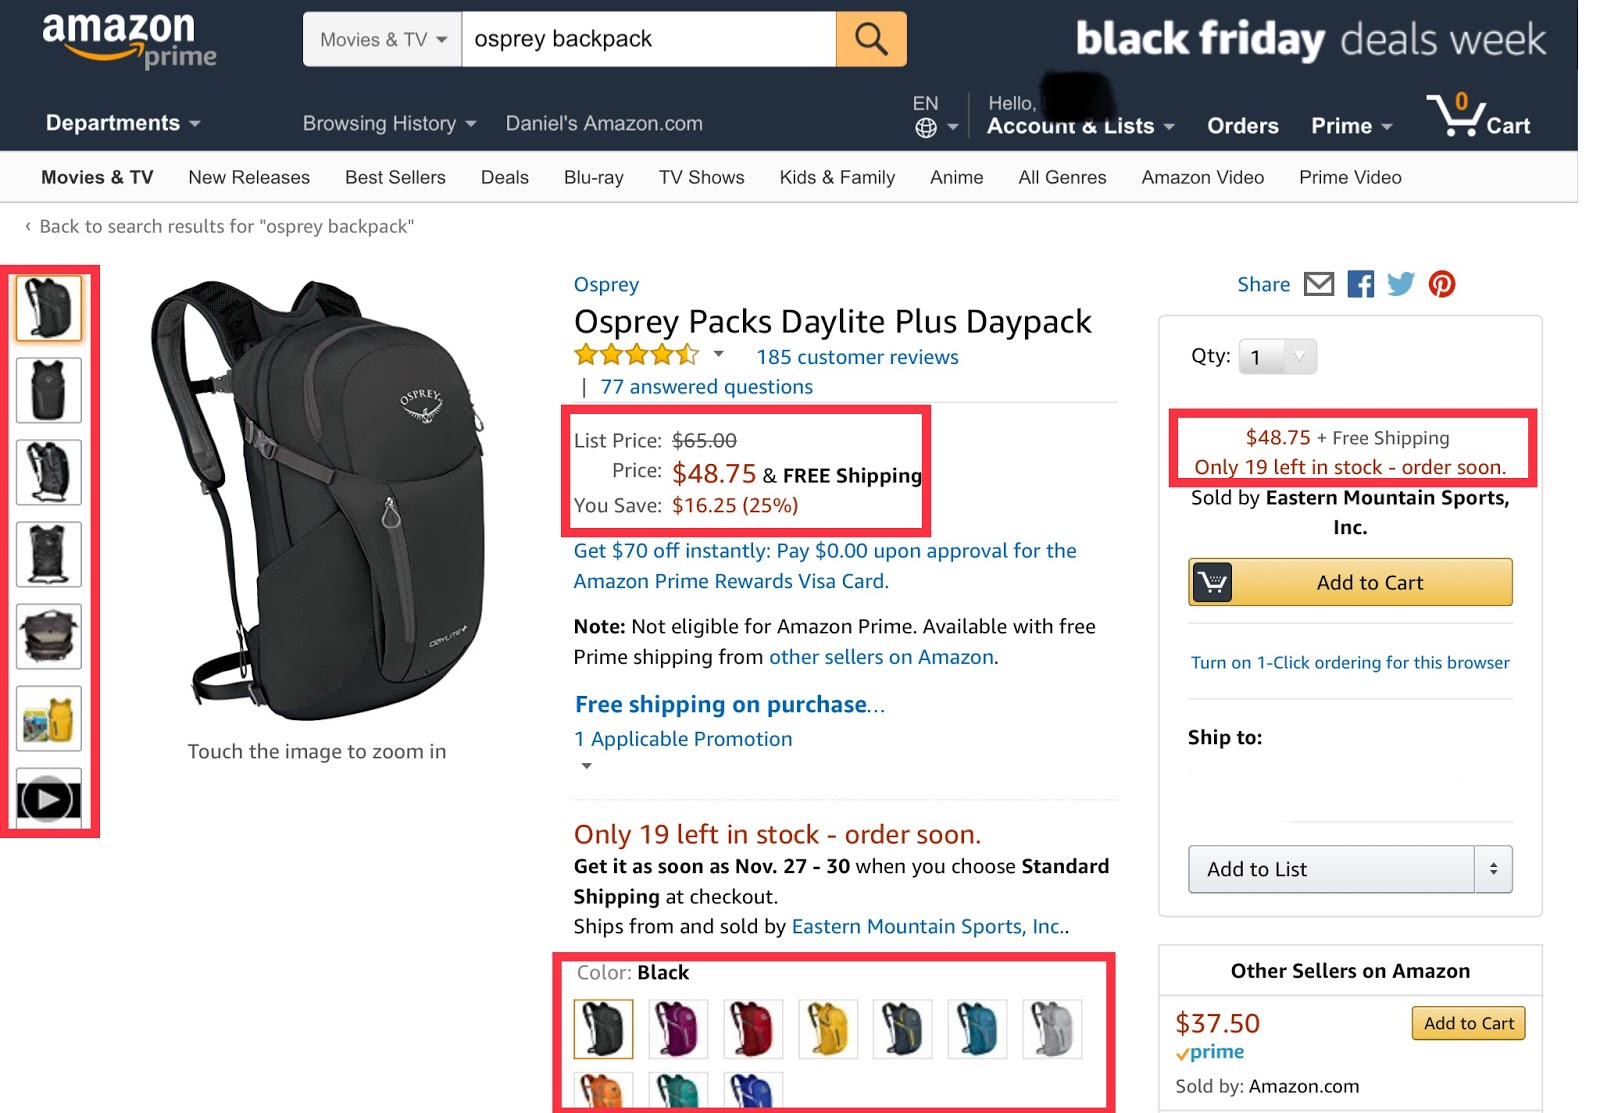 Amazon uses in-stock status to create scarcity and urgency.